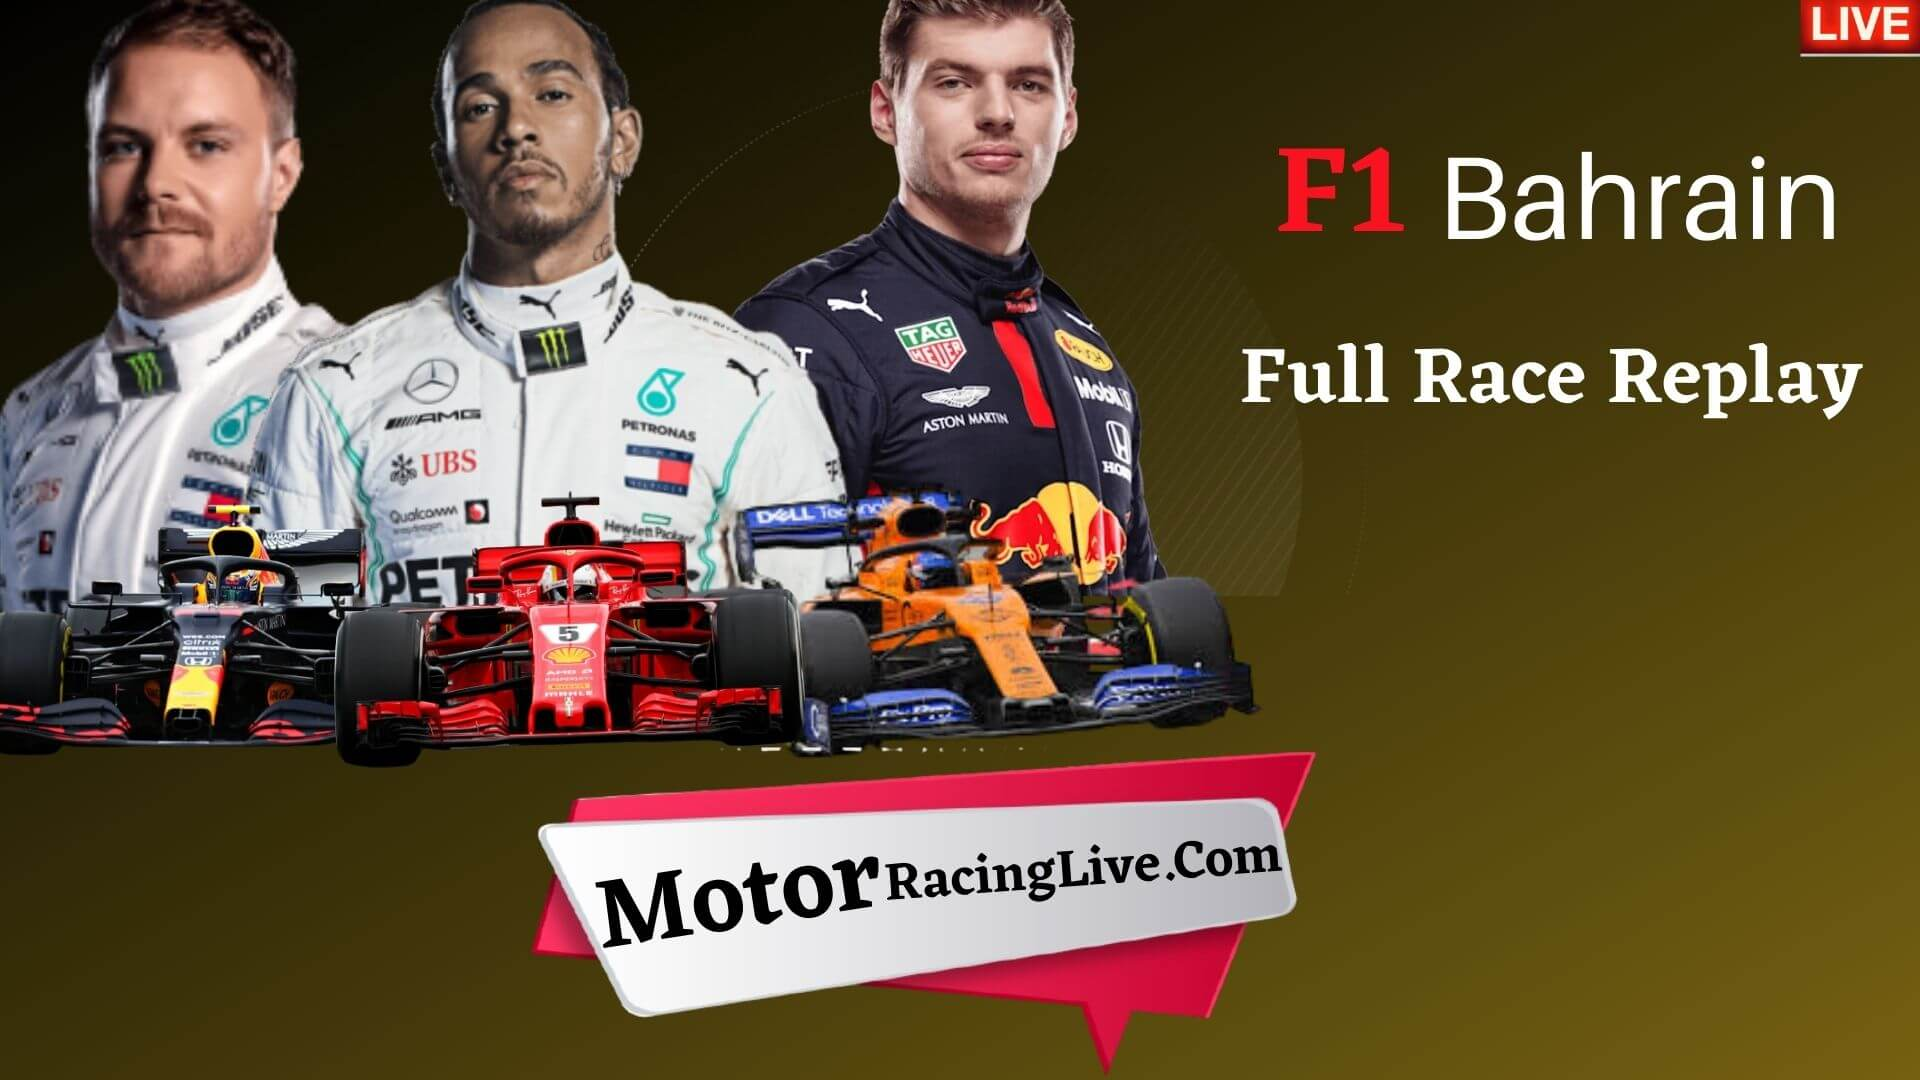 F1 Bahrain Grand Prix Live Stream 2020 | Full Race Replay